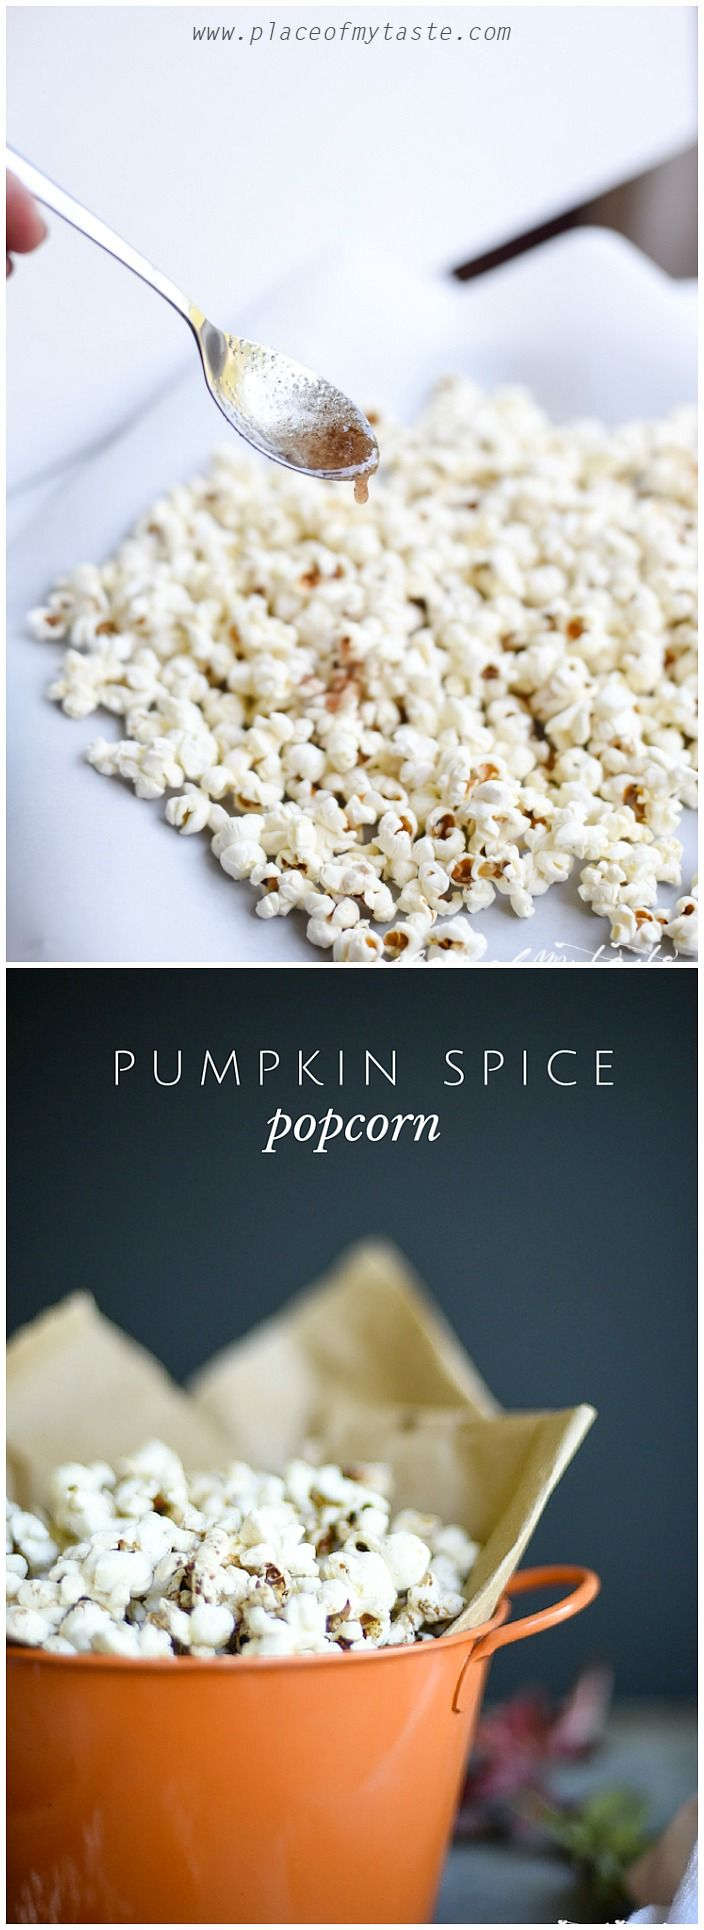 What a perfect snack for fall! Pumpkin Spice popcorn. Yum!